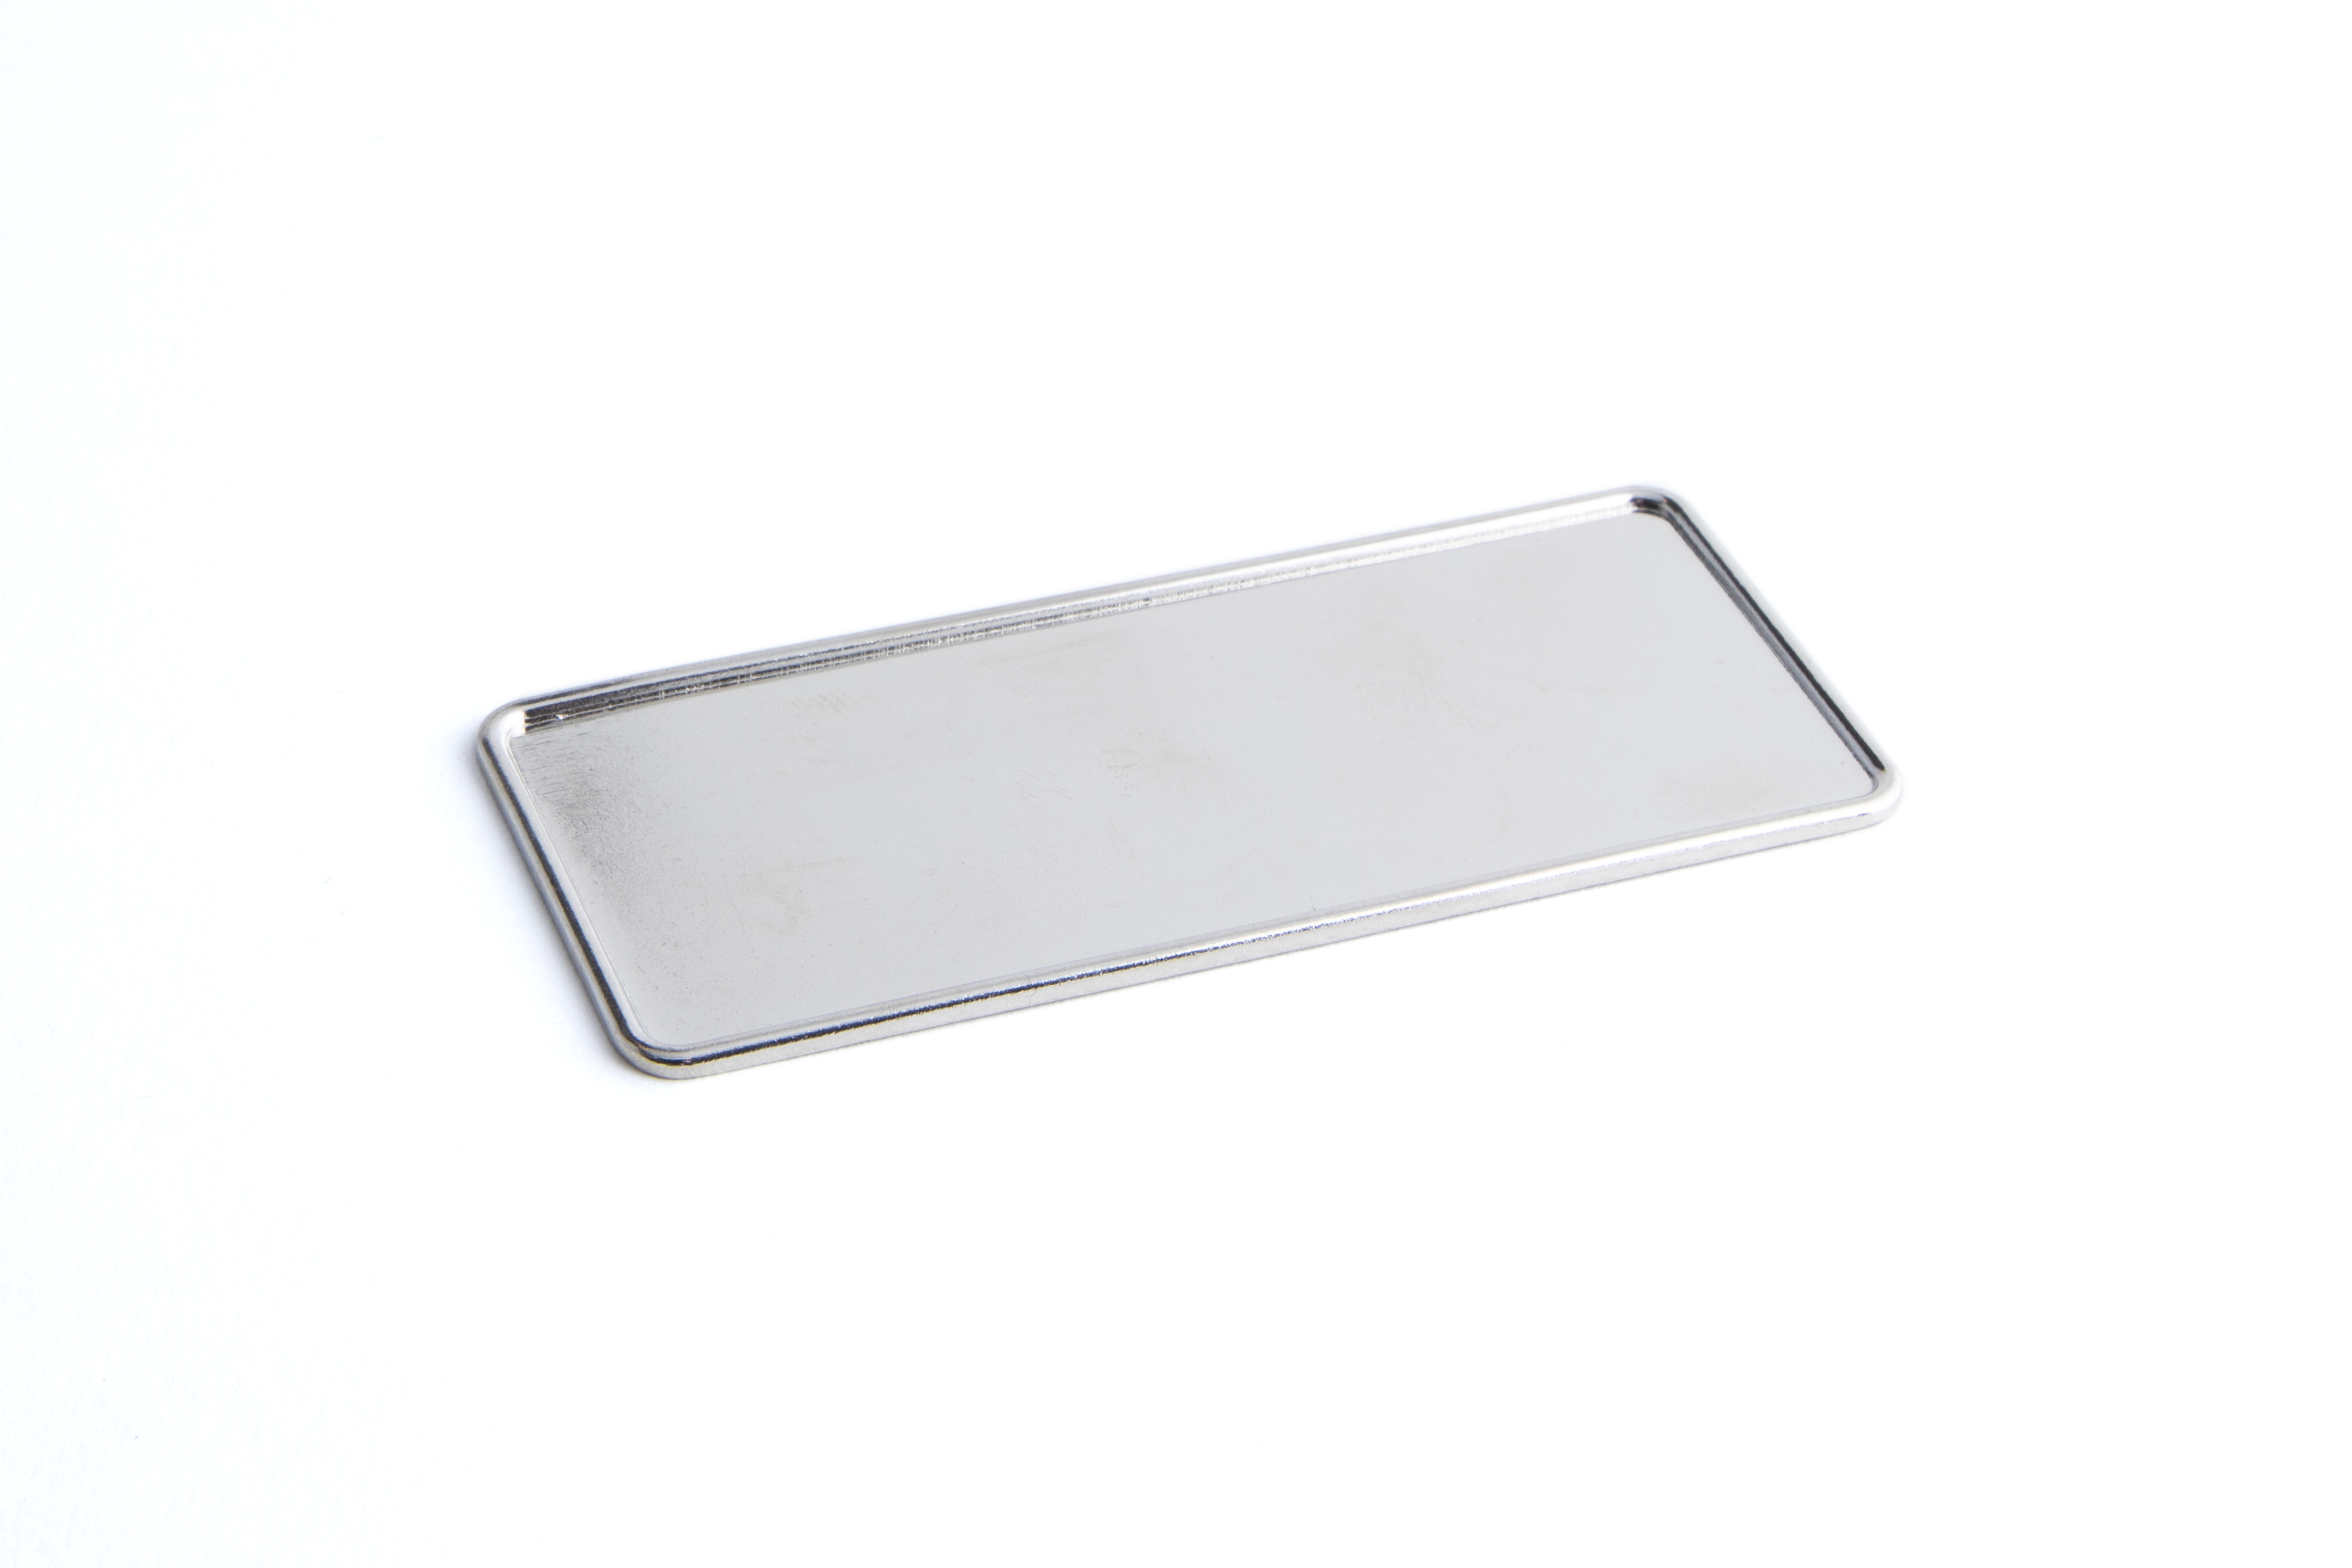 76 x 32 mm Metal Badge Frame with raised edge Nickel Plated